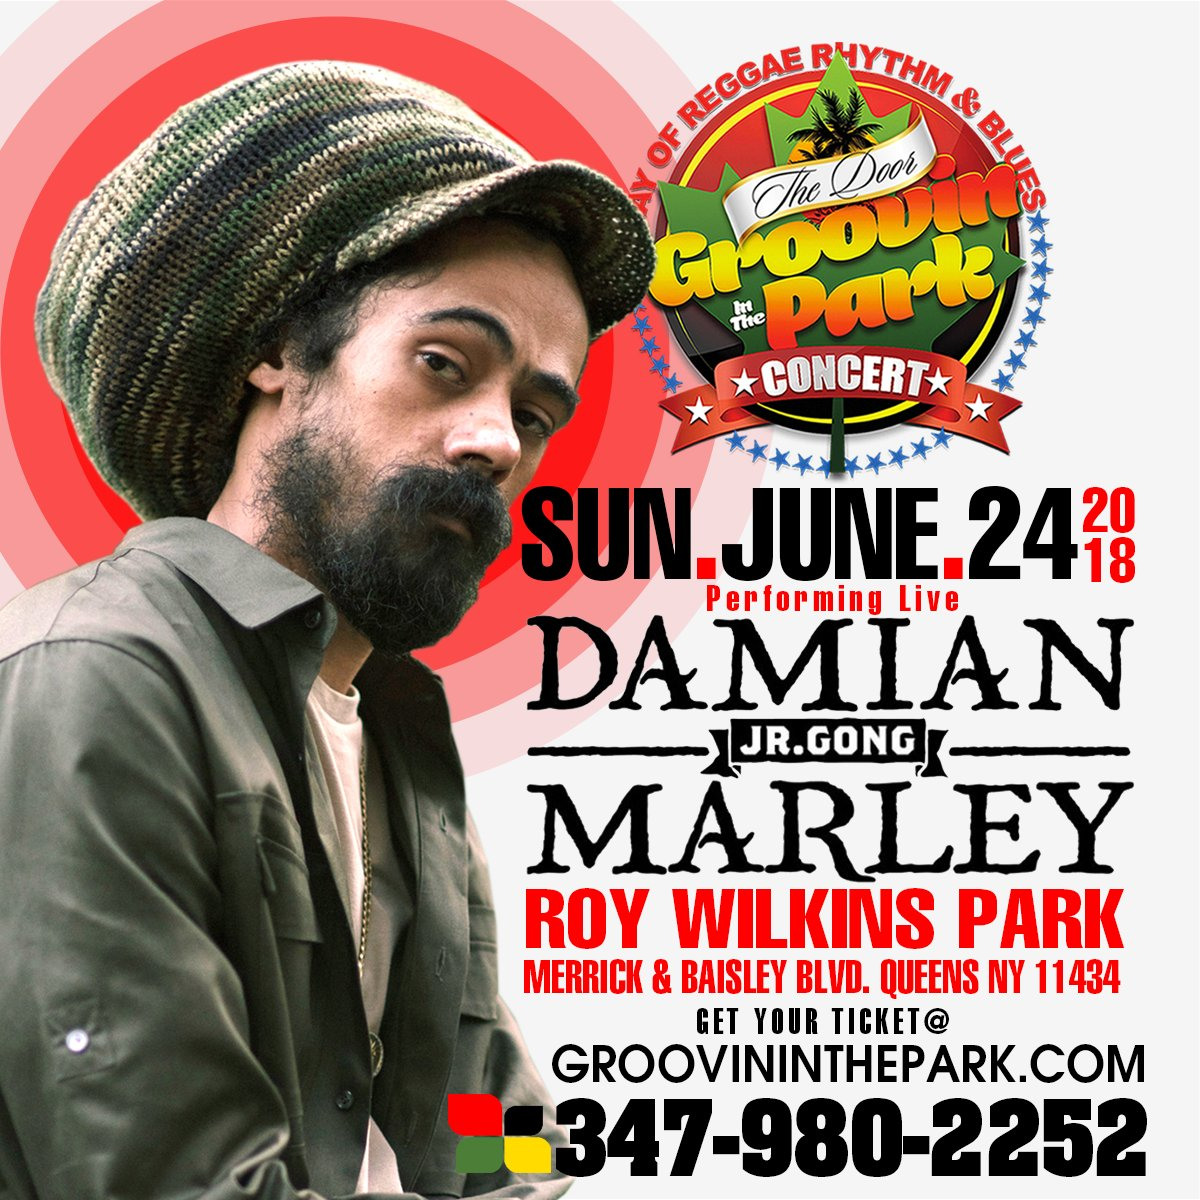 TOMORROW NIGHT 6/24!!! Dont miss Damian Jr Gong Marley at #GroovinInThePark in #Queens #NY!!! Limited tickets available: groovininthepark.com #DamianMarley #StonyHill #JrGong #GongZilla @GroovinOnLife